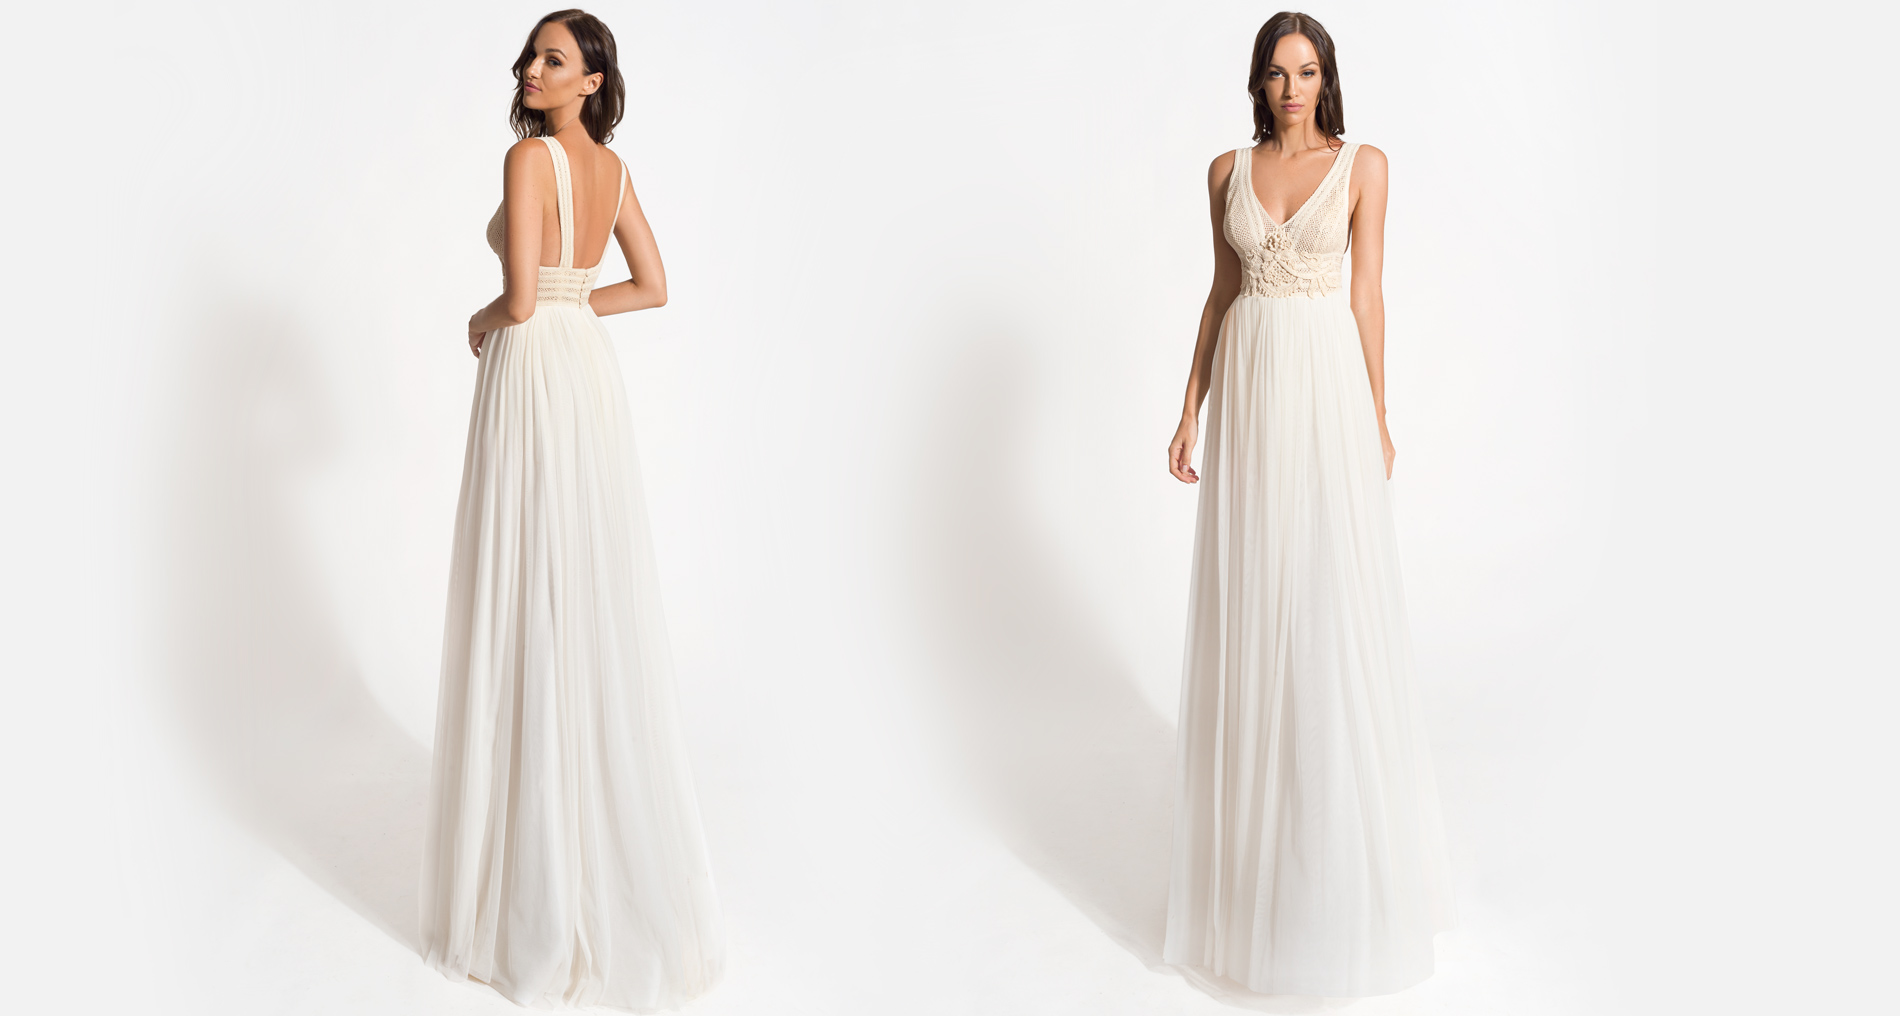 Alkistis wedding dress from  Hellenic Vintage Origin Collection